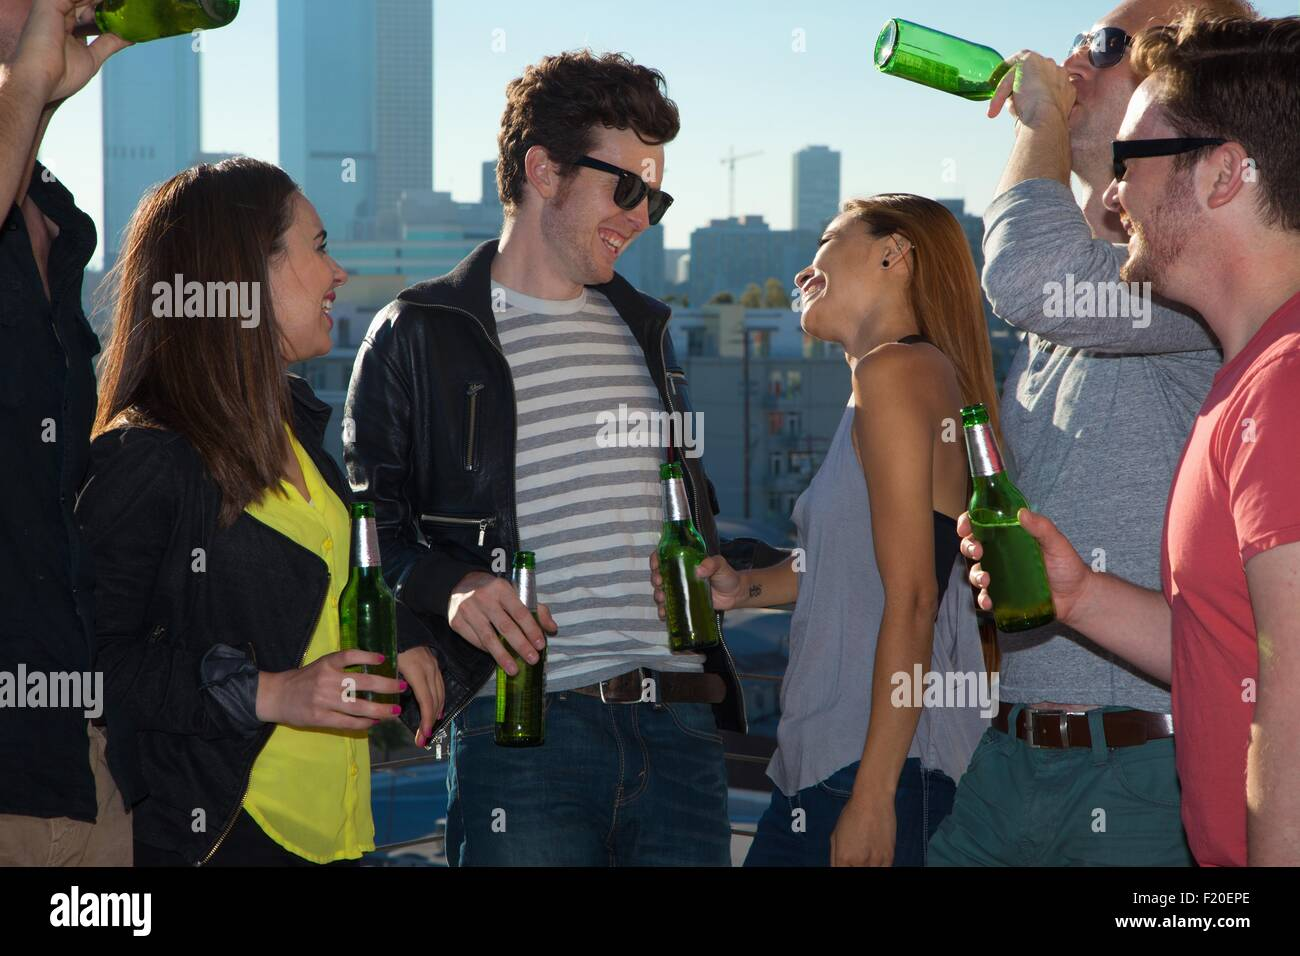 Six adult friends flirting and drinking beer at rooftop bar with Los Angeles skyline, USA - Stock Image